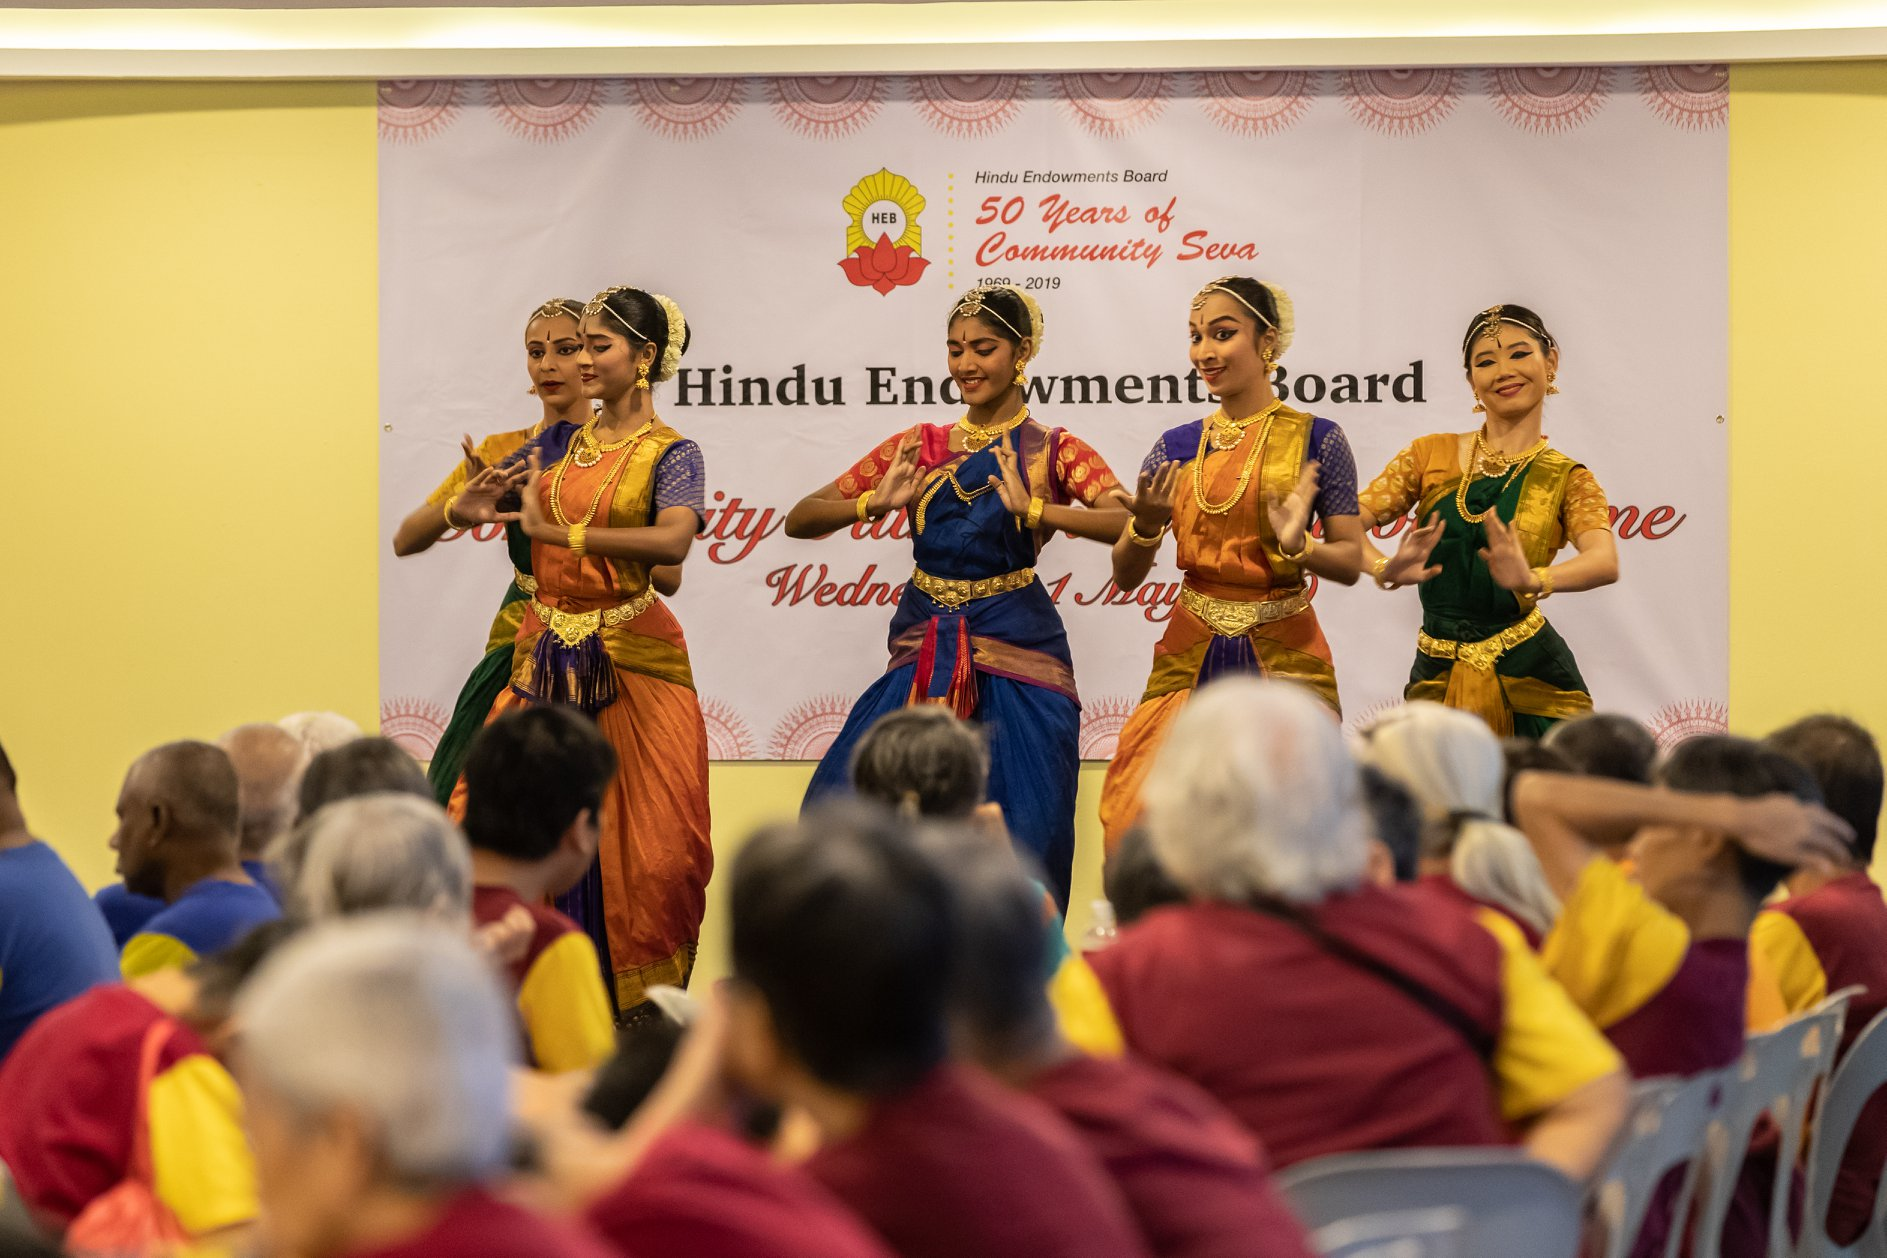 Residents at Sunlove Home enjoying an Indian dance performance. Photo courtesy: Hindu Endowments Board